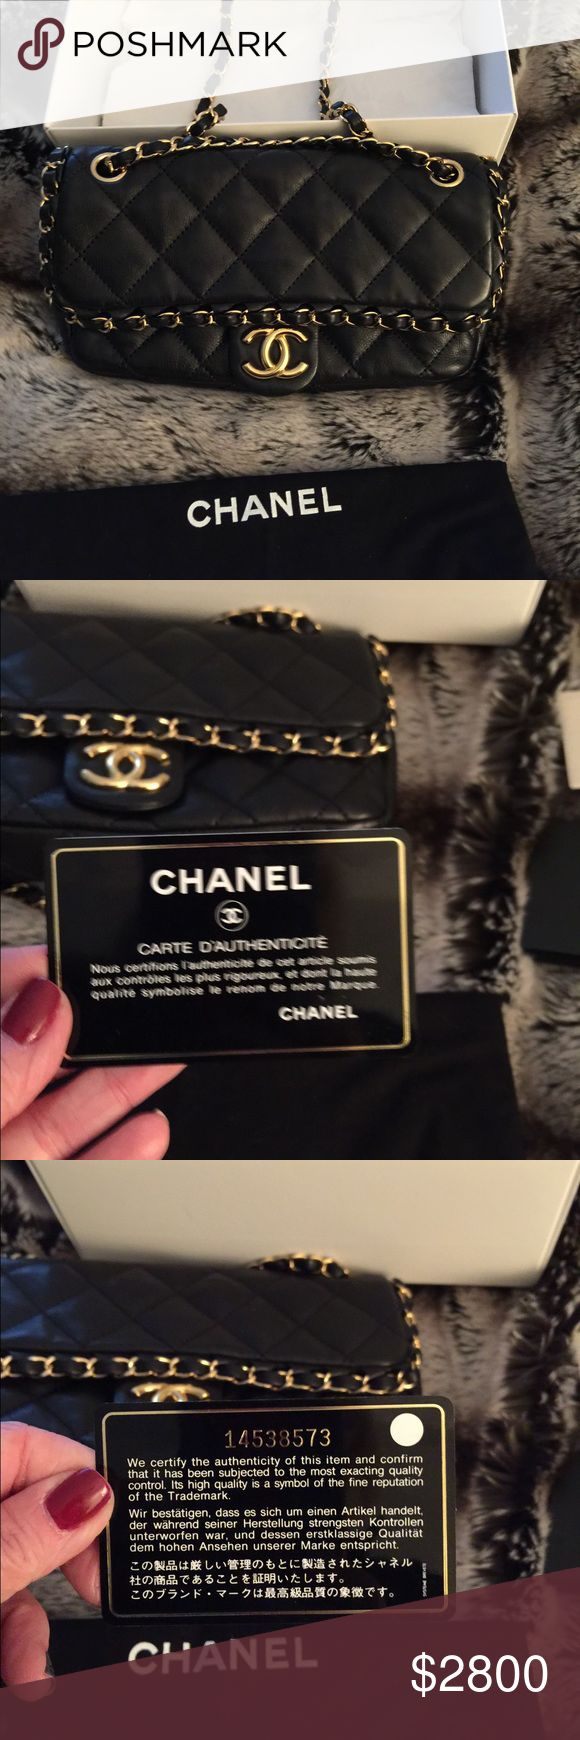 Authentic Chanel Bag! No scratches! Black leather CHANEL Bags Shoulder Bags